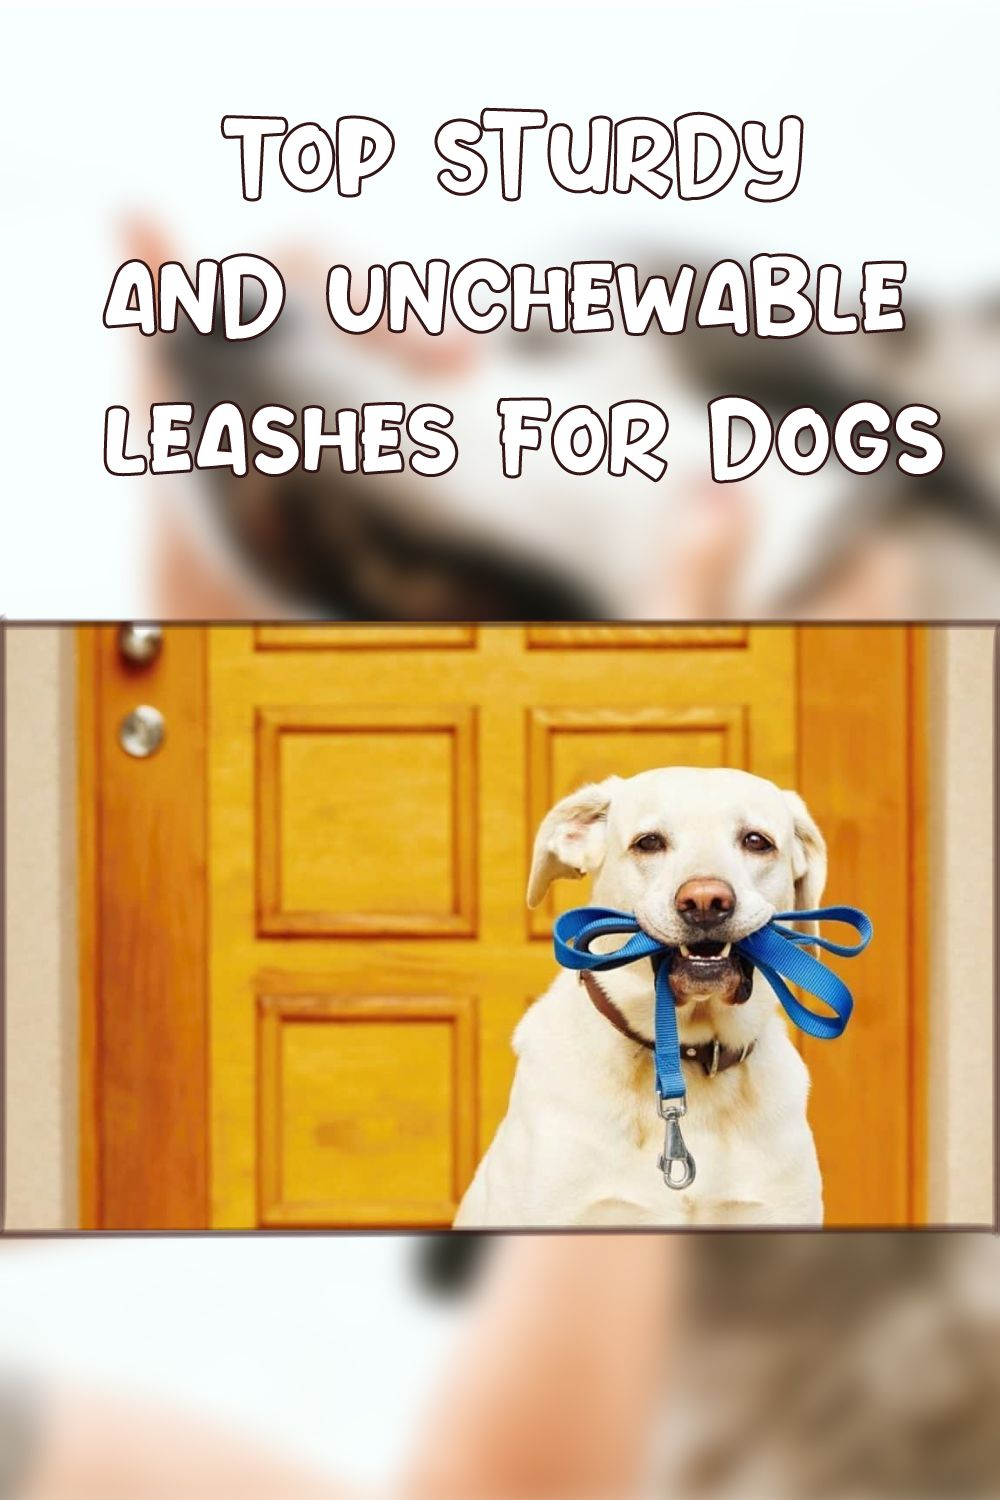 Best Dog Leash For Chewers Mypetguides 2020 In 2020 Dogs Dog